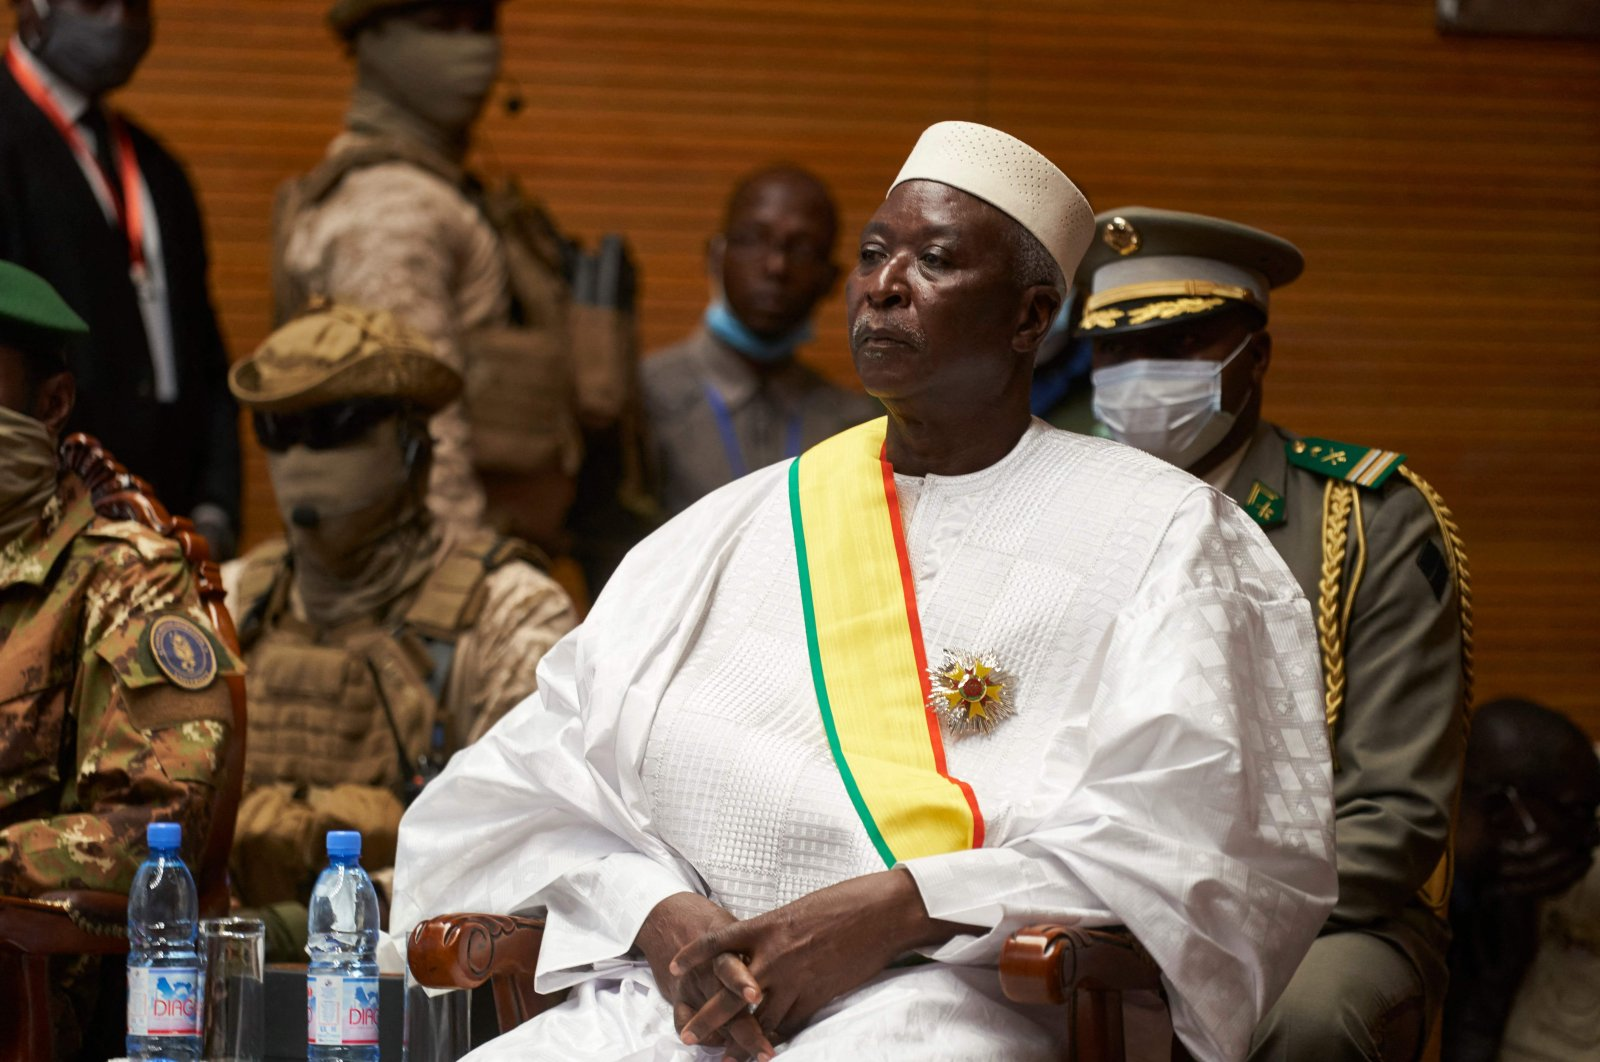 In this file photo, Mali's interim President Bah Ndaw is seen during his inauguration ceremony at the CICB (Centre International de Conferences de Bamako) in Bamako, Mali, Sept. 25, 2020. (AFP Photo)